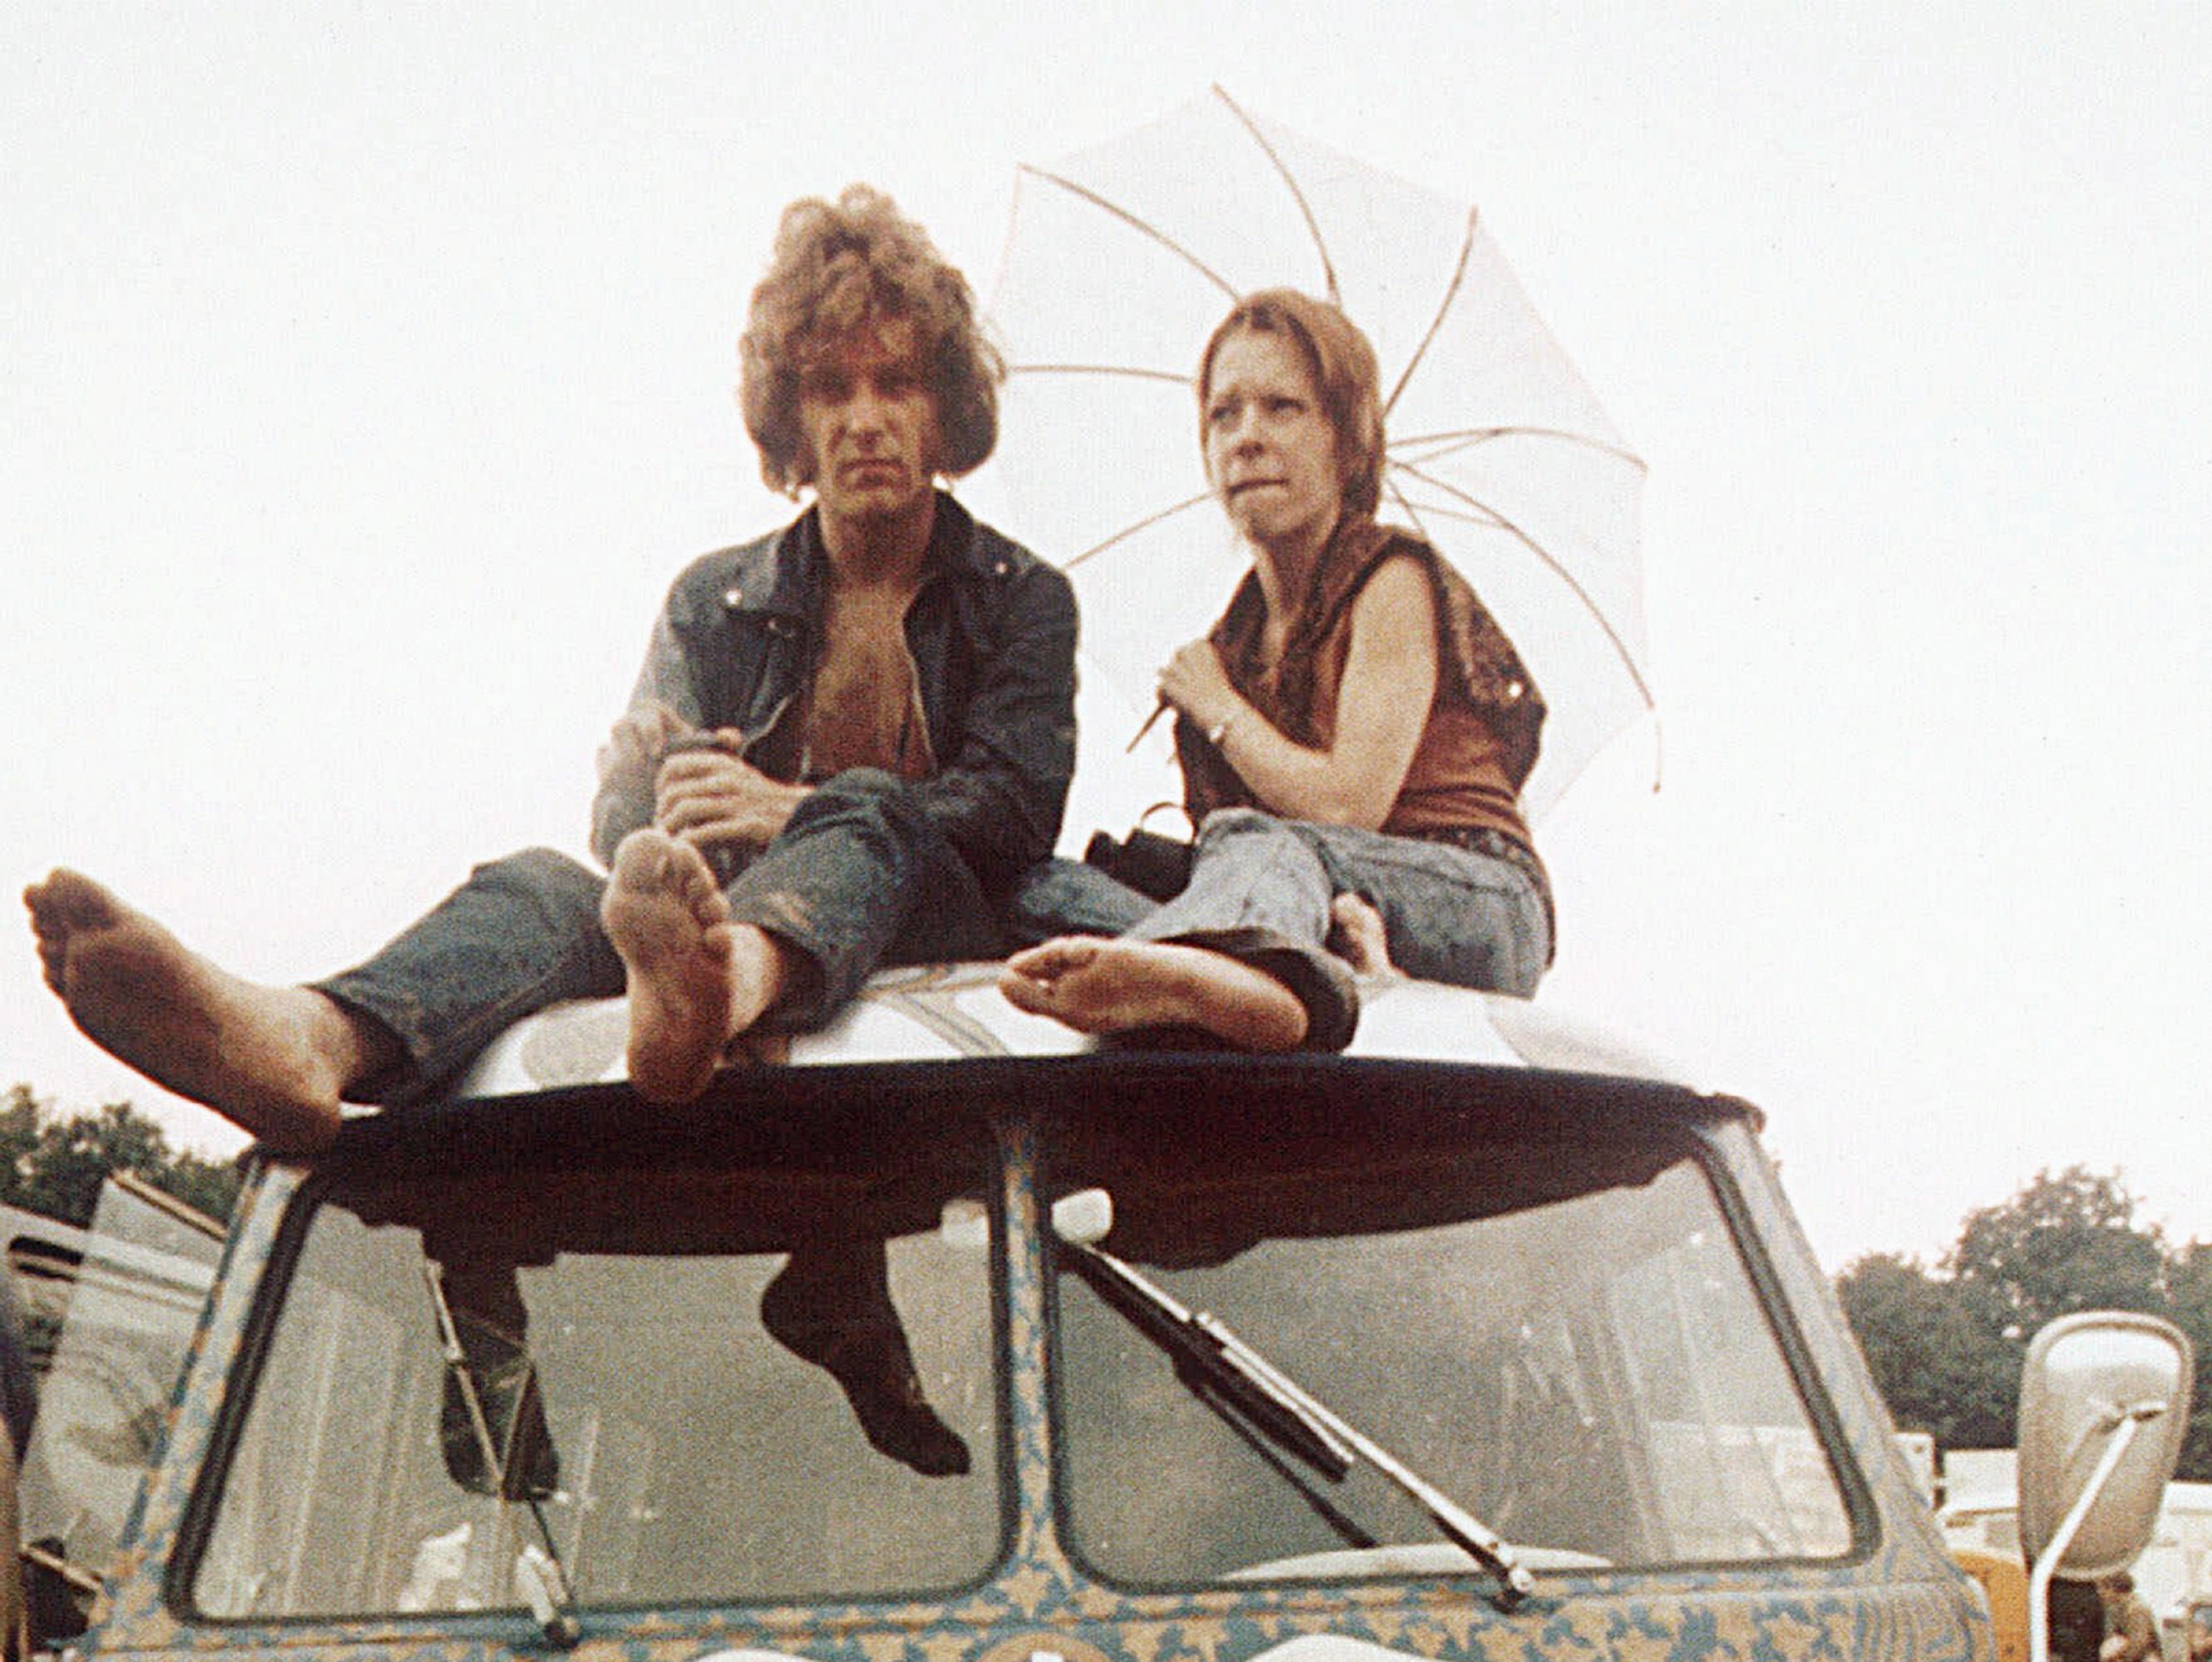 Concert-goers sit on the roof of a Volkswagen bus at the Woodstock Music and Arts Fair at Bethel, N.Y., in mid-August 1969. The three-day concert attracted hundreds of thousands of people, and became a landmark cultural event of the late '60s.